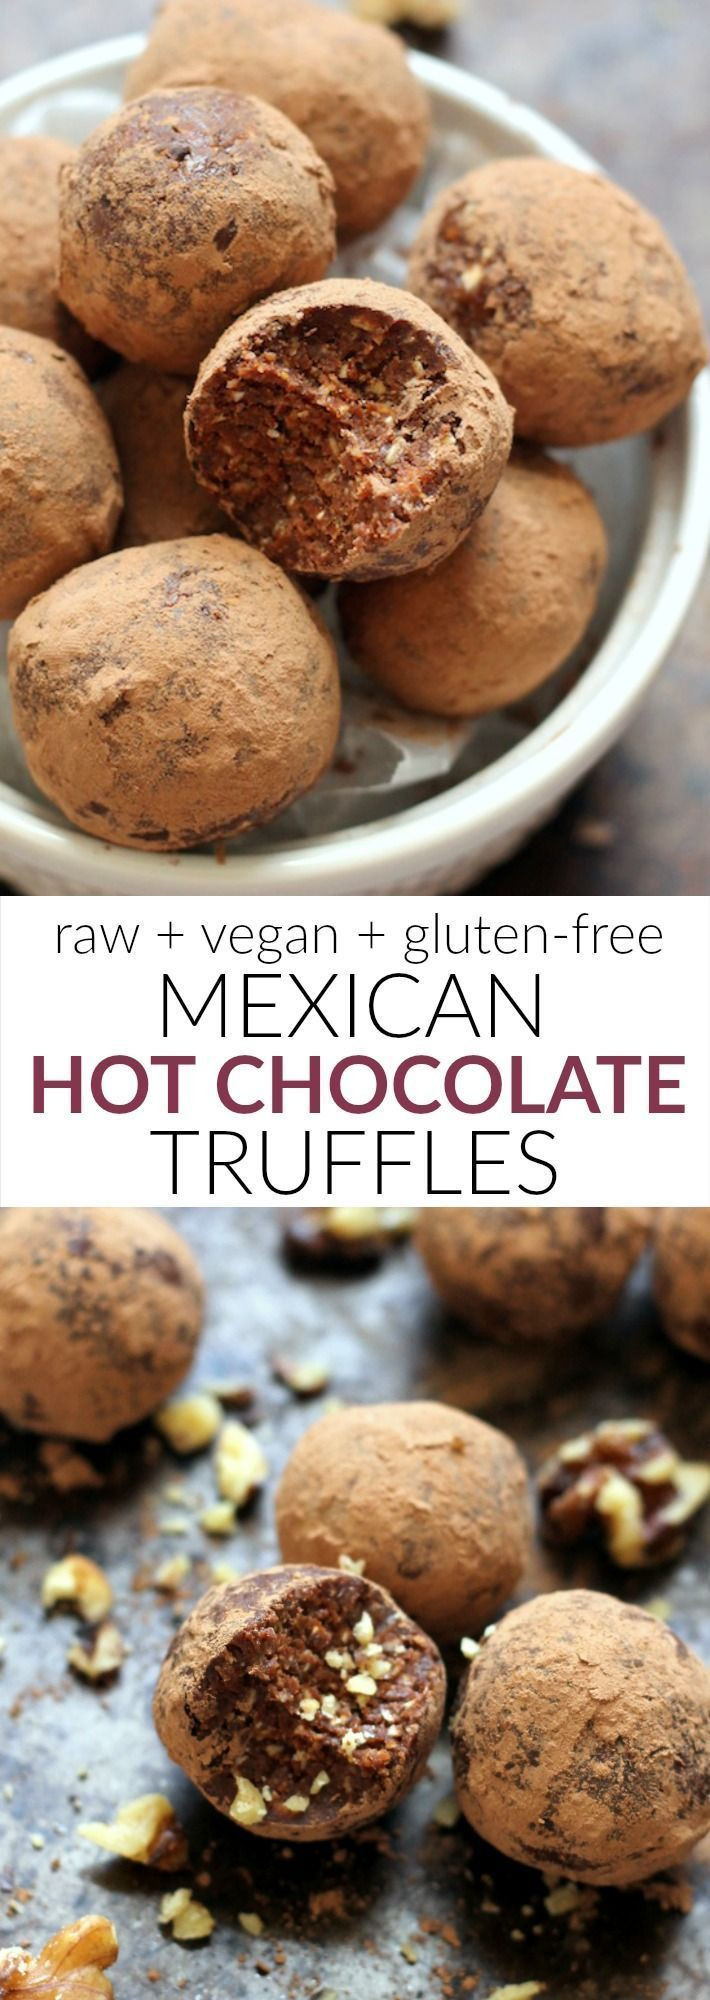 Healthy Mexican Desserts  Best 25 Healthy mexican dessert ideas on Pinterest